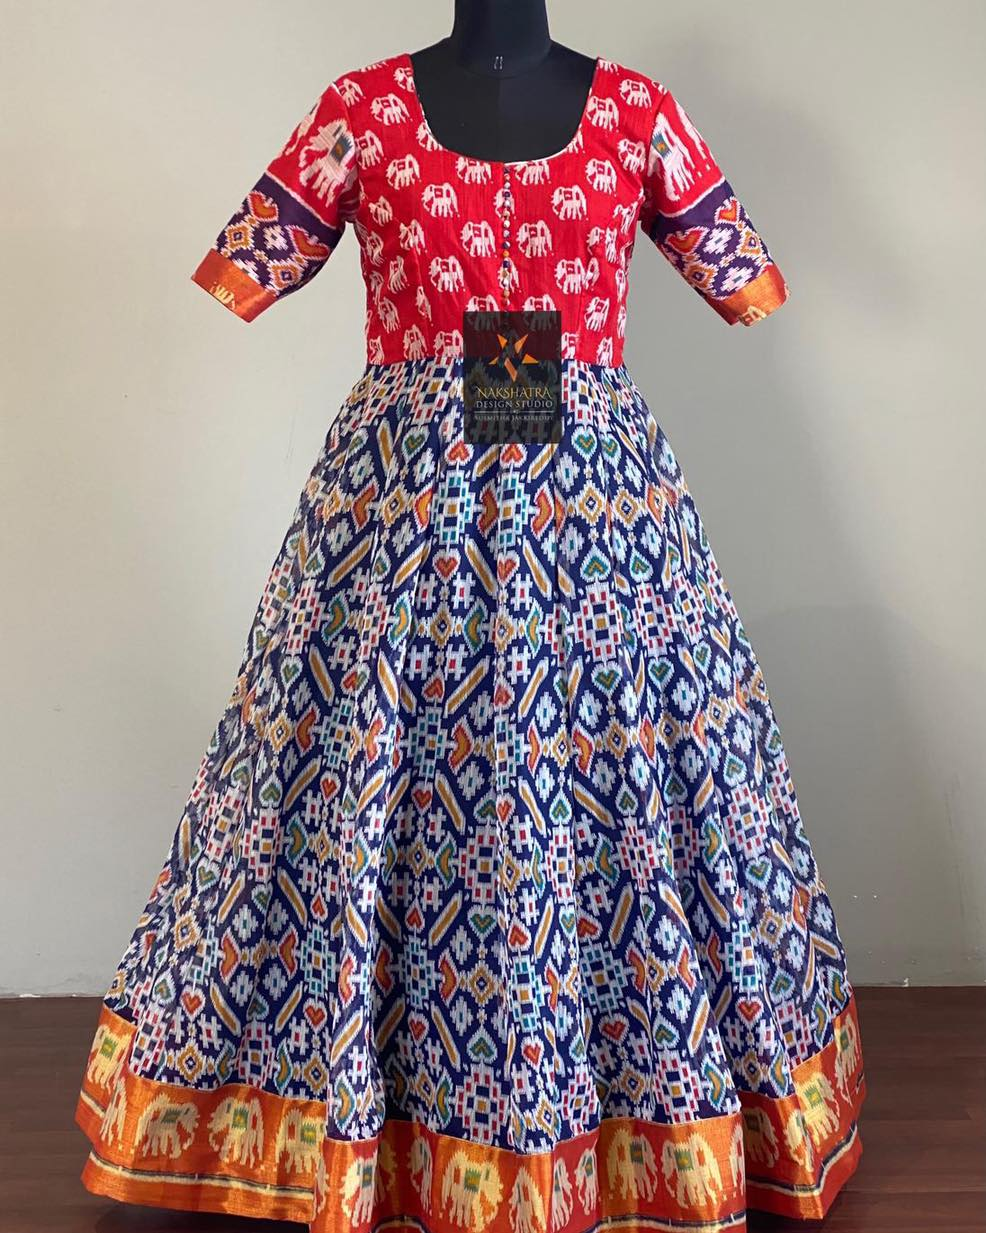 Lenin jute blend ikkath printed long frocks perfect for small get together's this summer .  2021-06-19